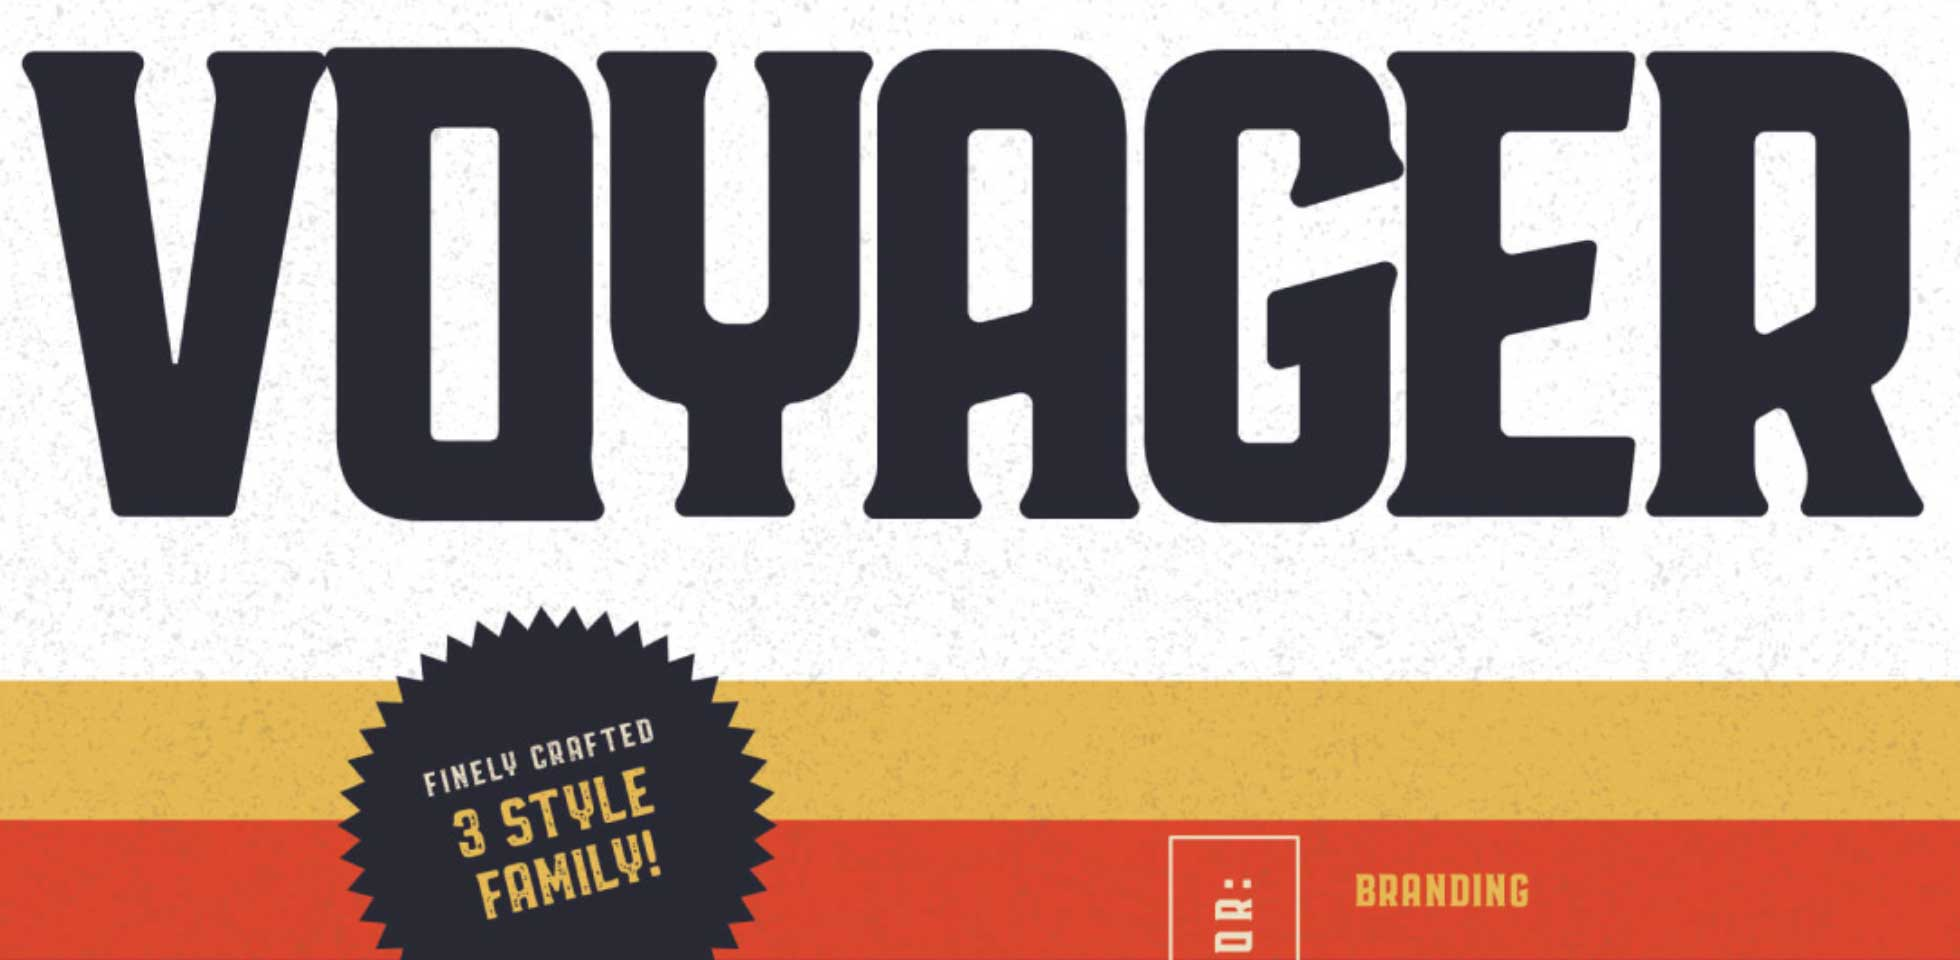 Free Download: Voyager Typeface